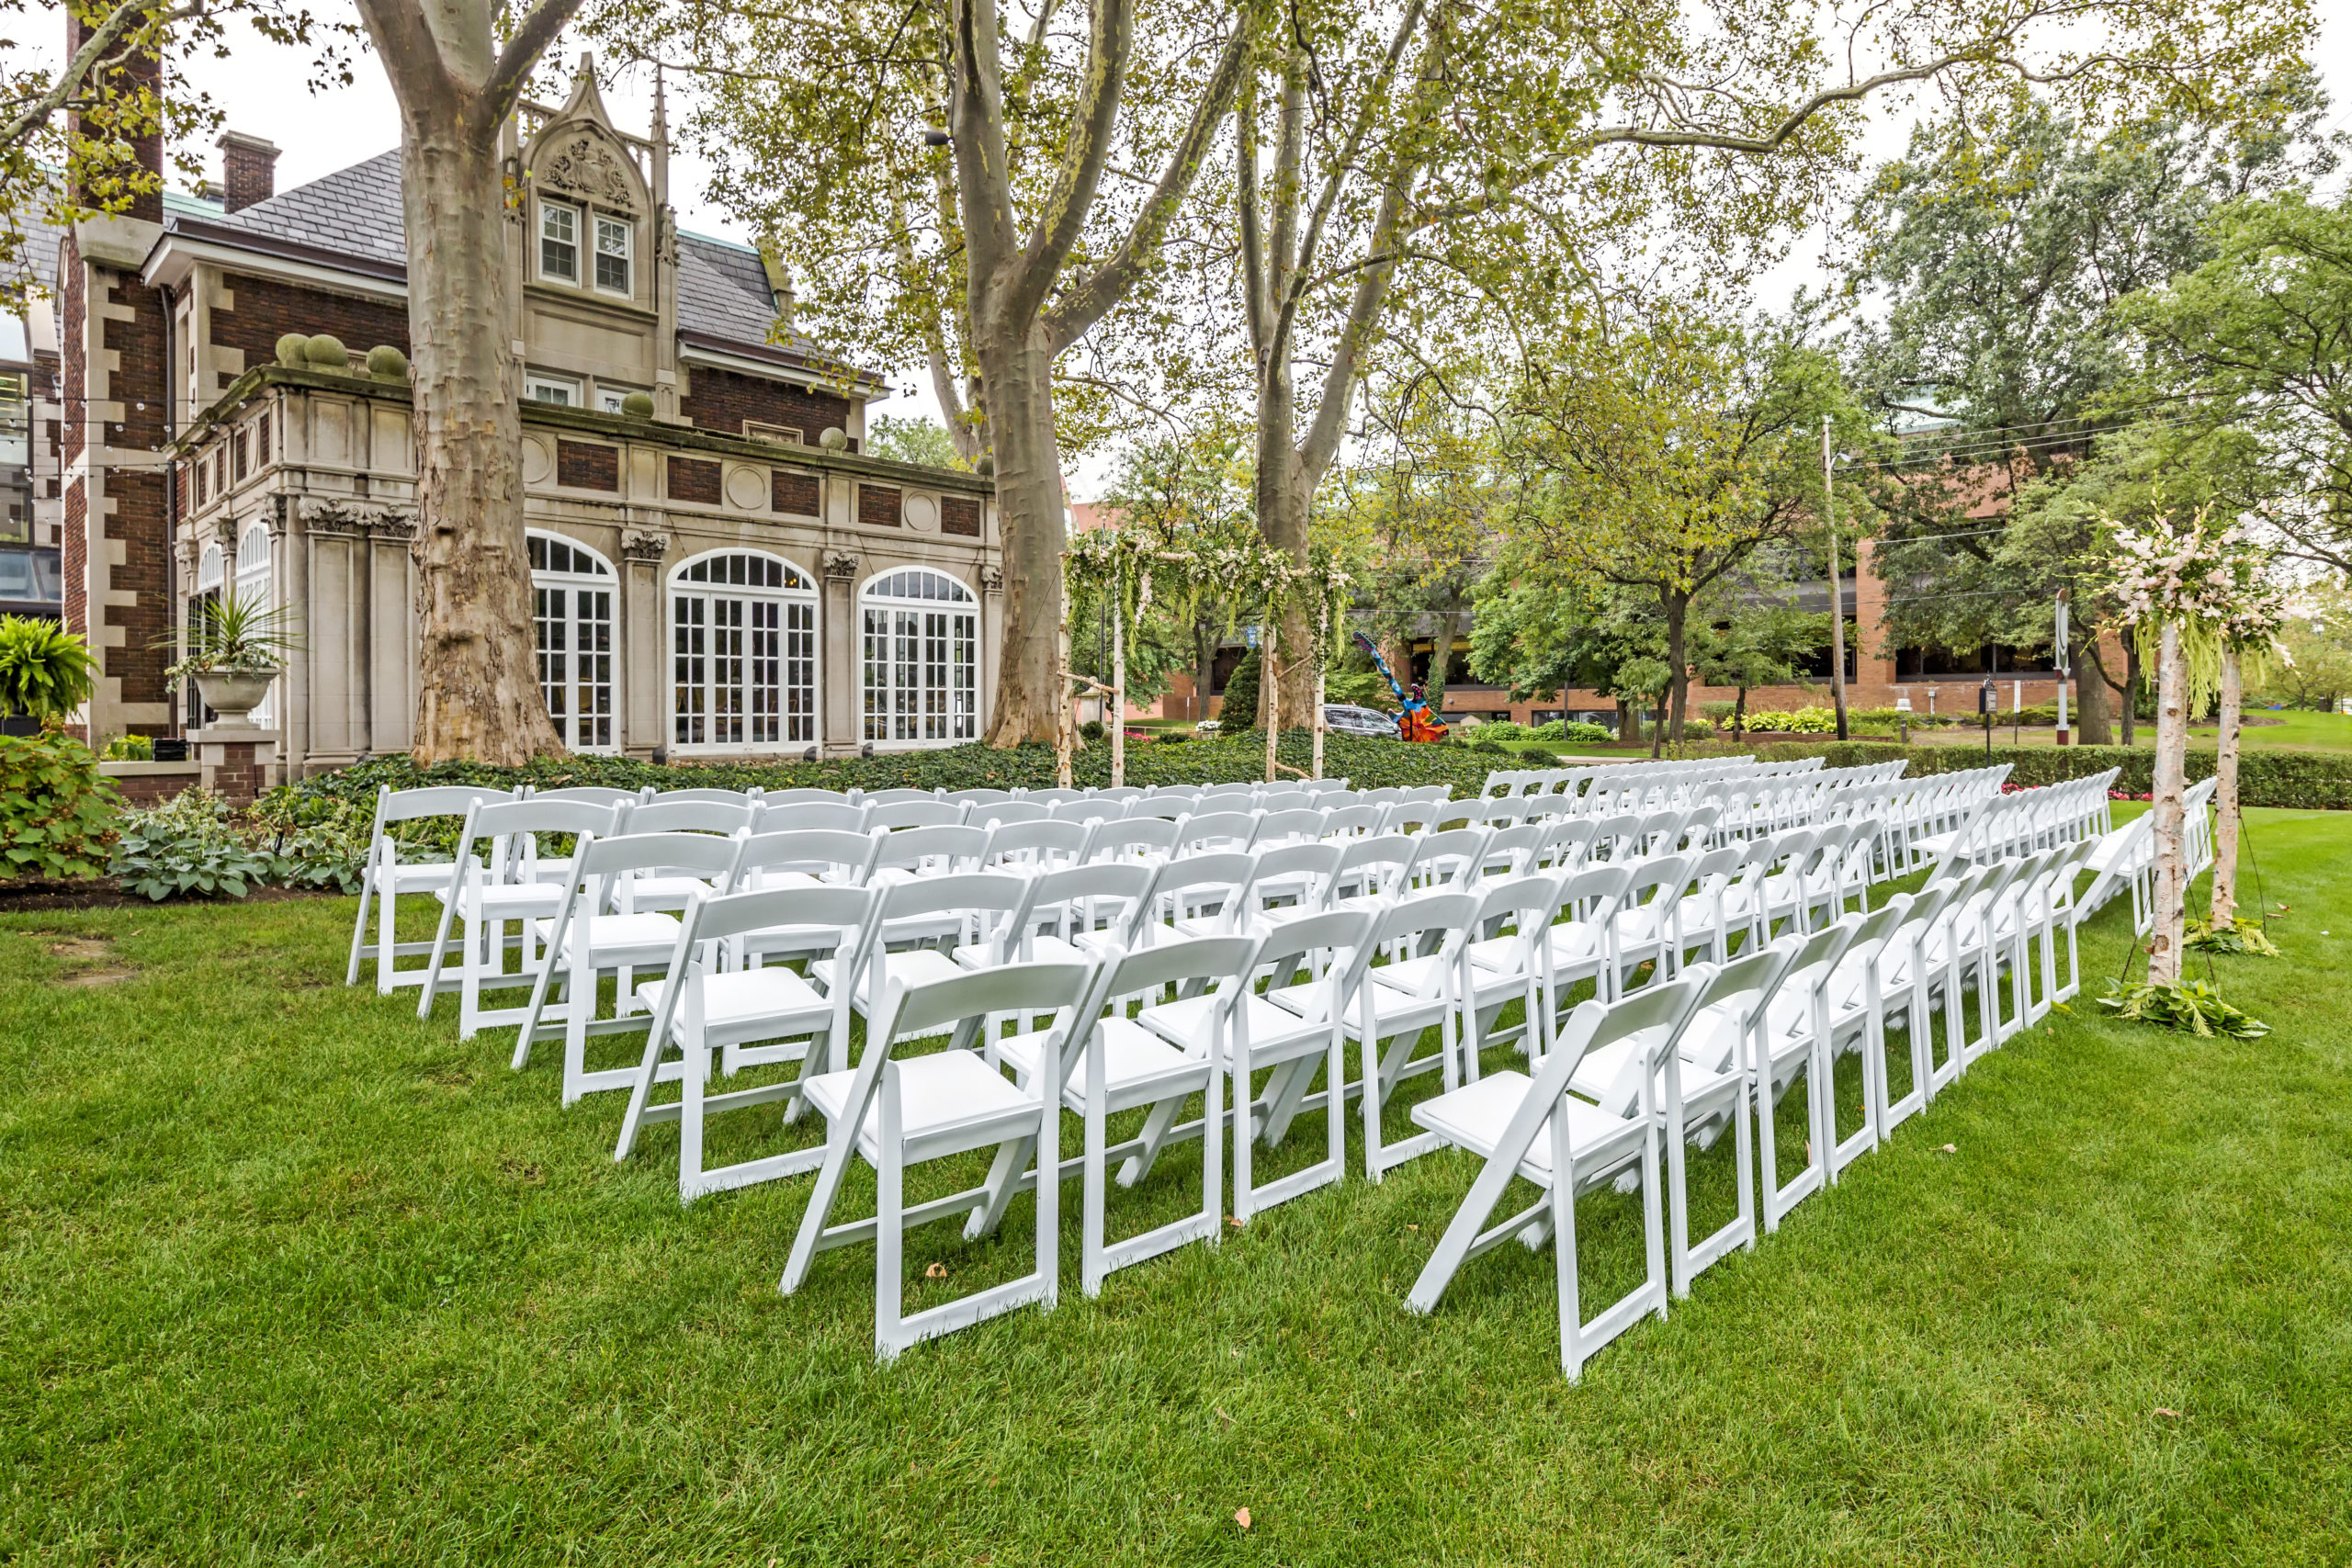 glidden-house-wedding-ceremony-setup-outside